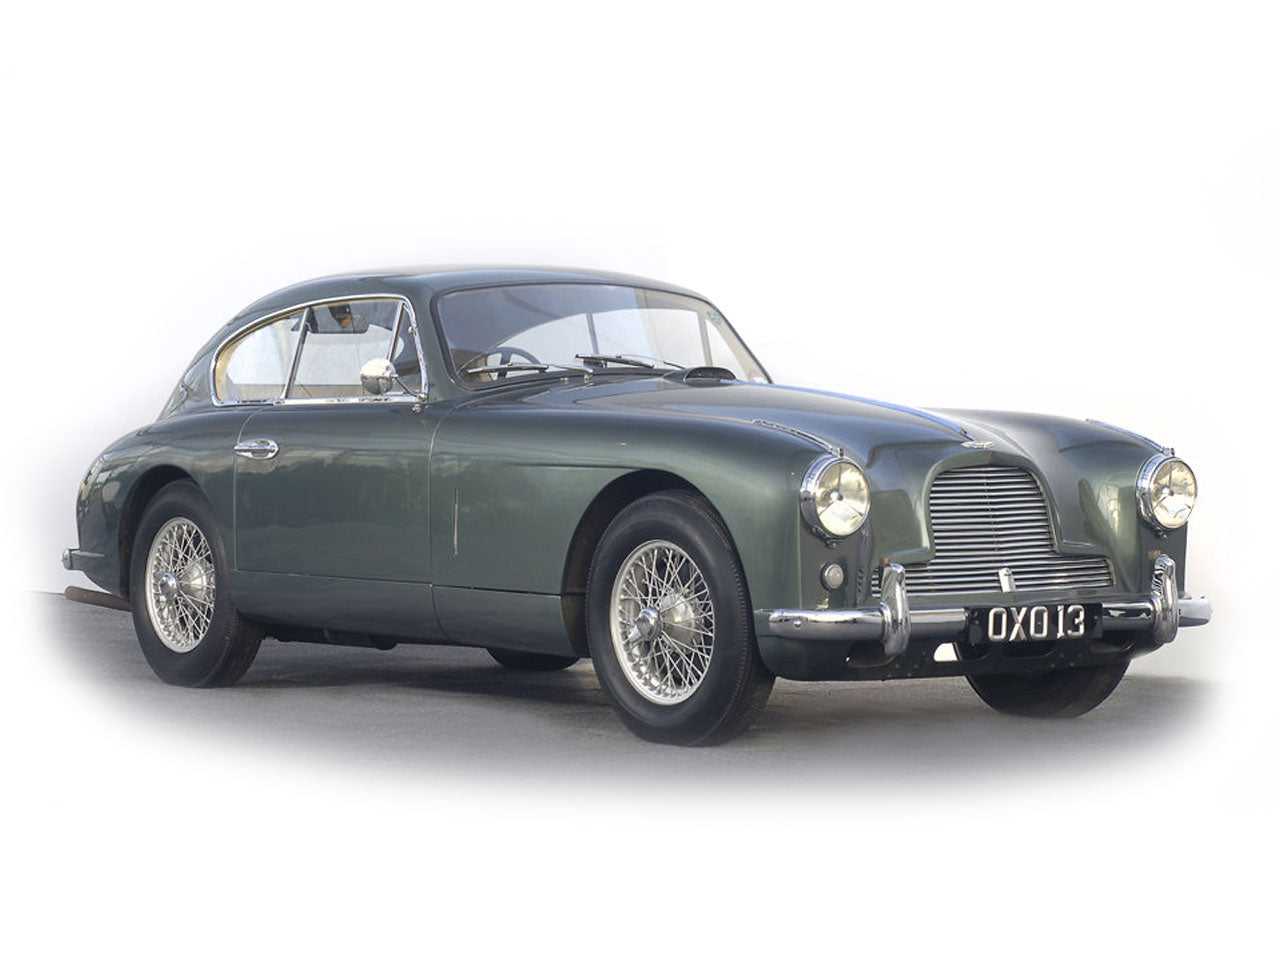 Aston Martin DB Stainless Steel Exhaust System - Aston martin db2